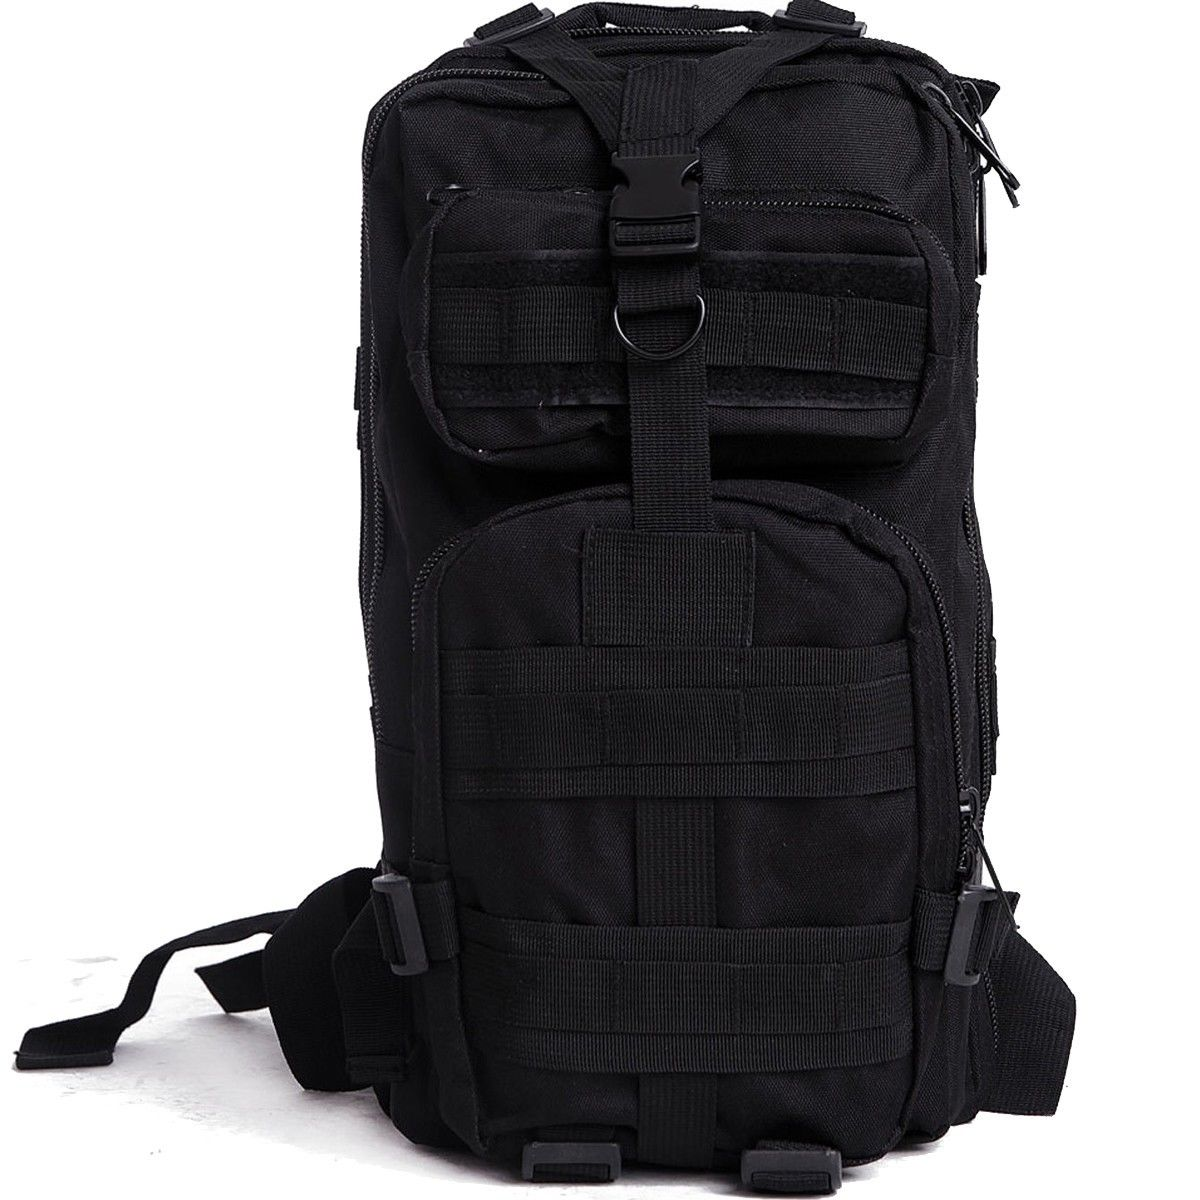 Outdoor Tactical backpack MOLLE Rucksack Bag For Sports Camping Hiking